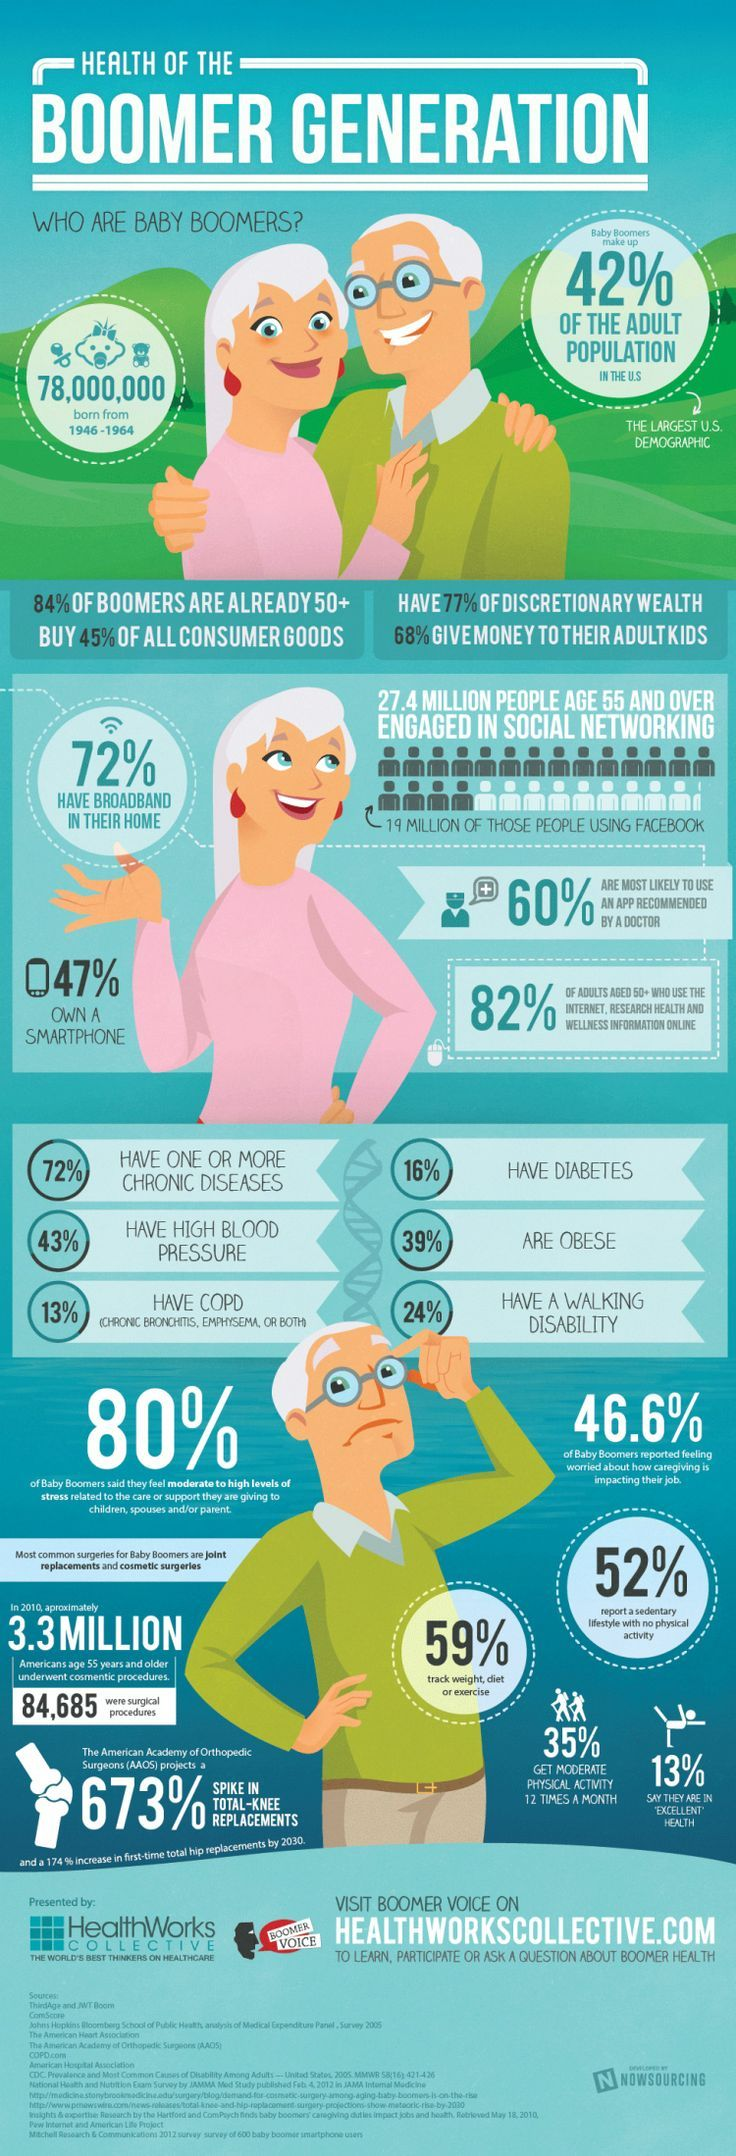 More than 46% of Baby Boomers reported feeling worried about how caregiving is impacting their job